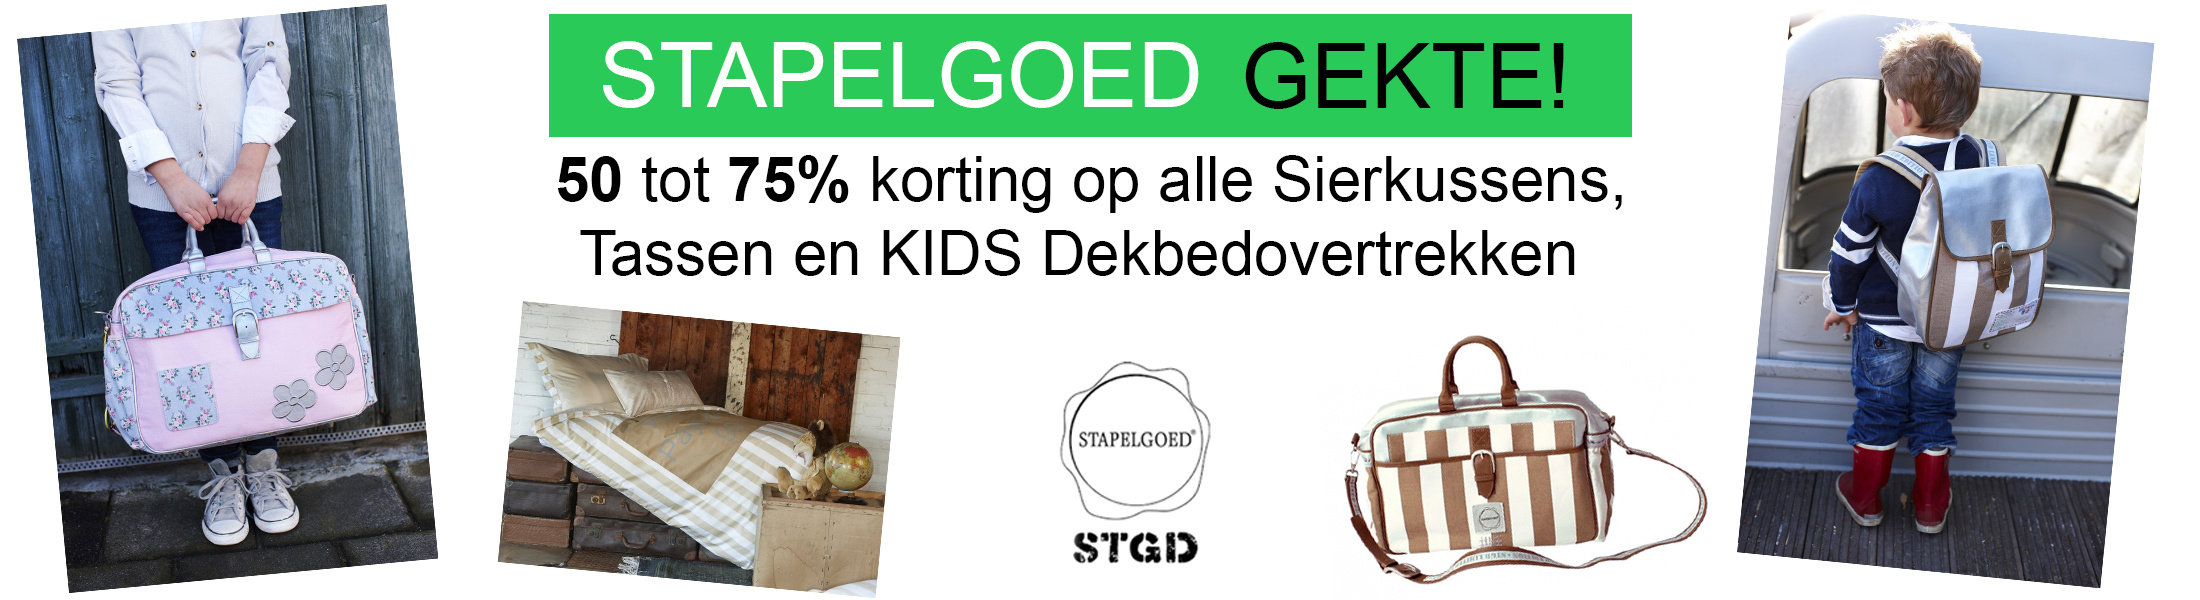 stapelgoed gekte